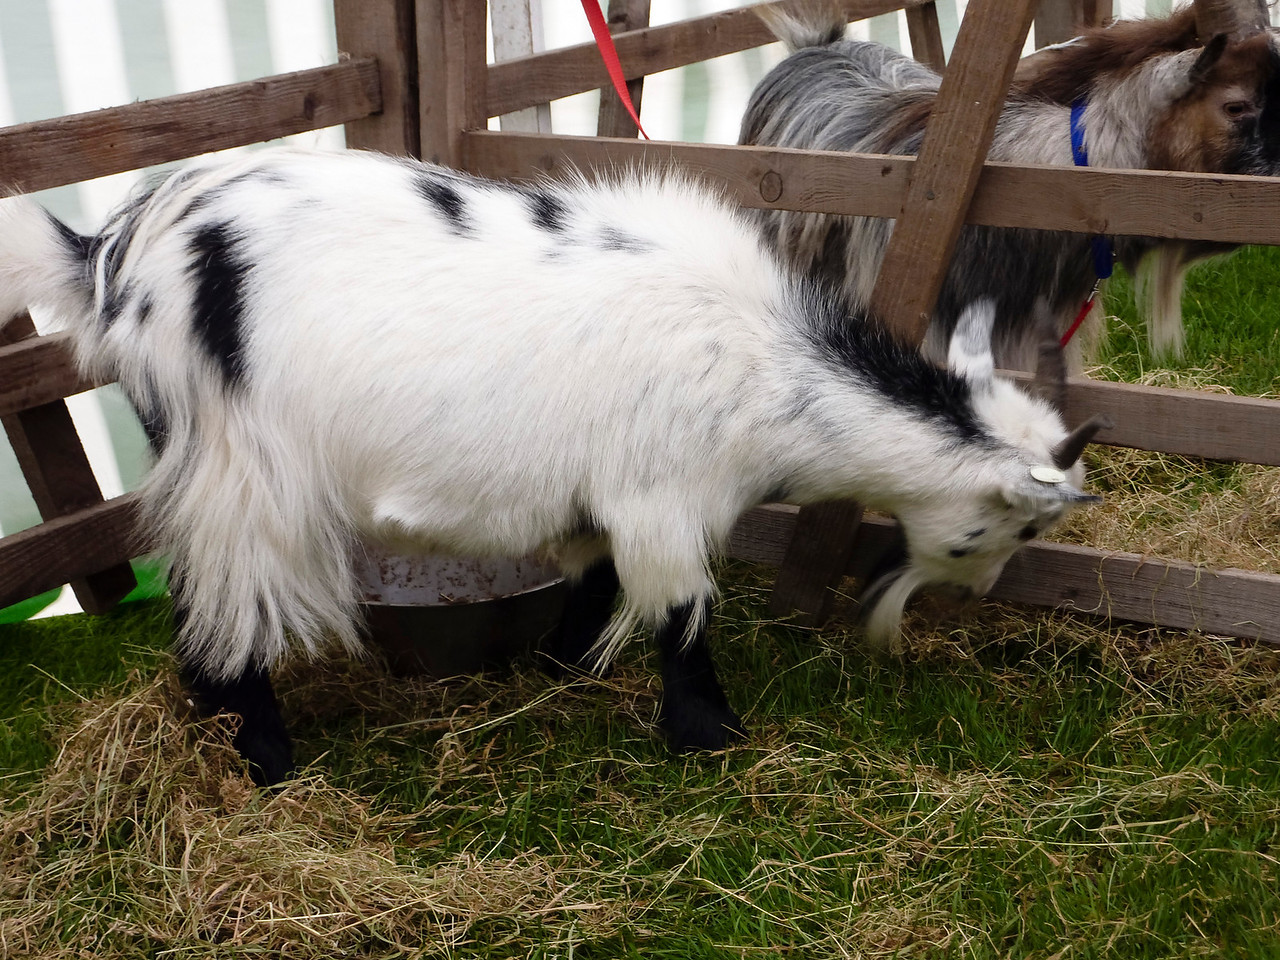 In the pygmy-goat tent